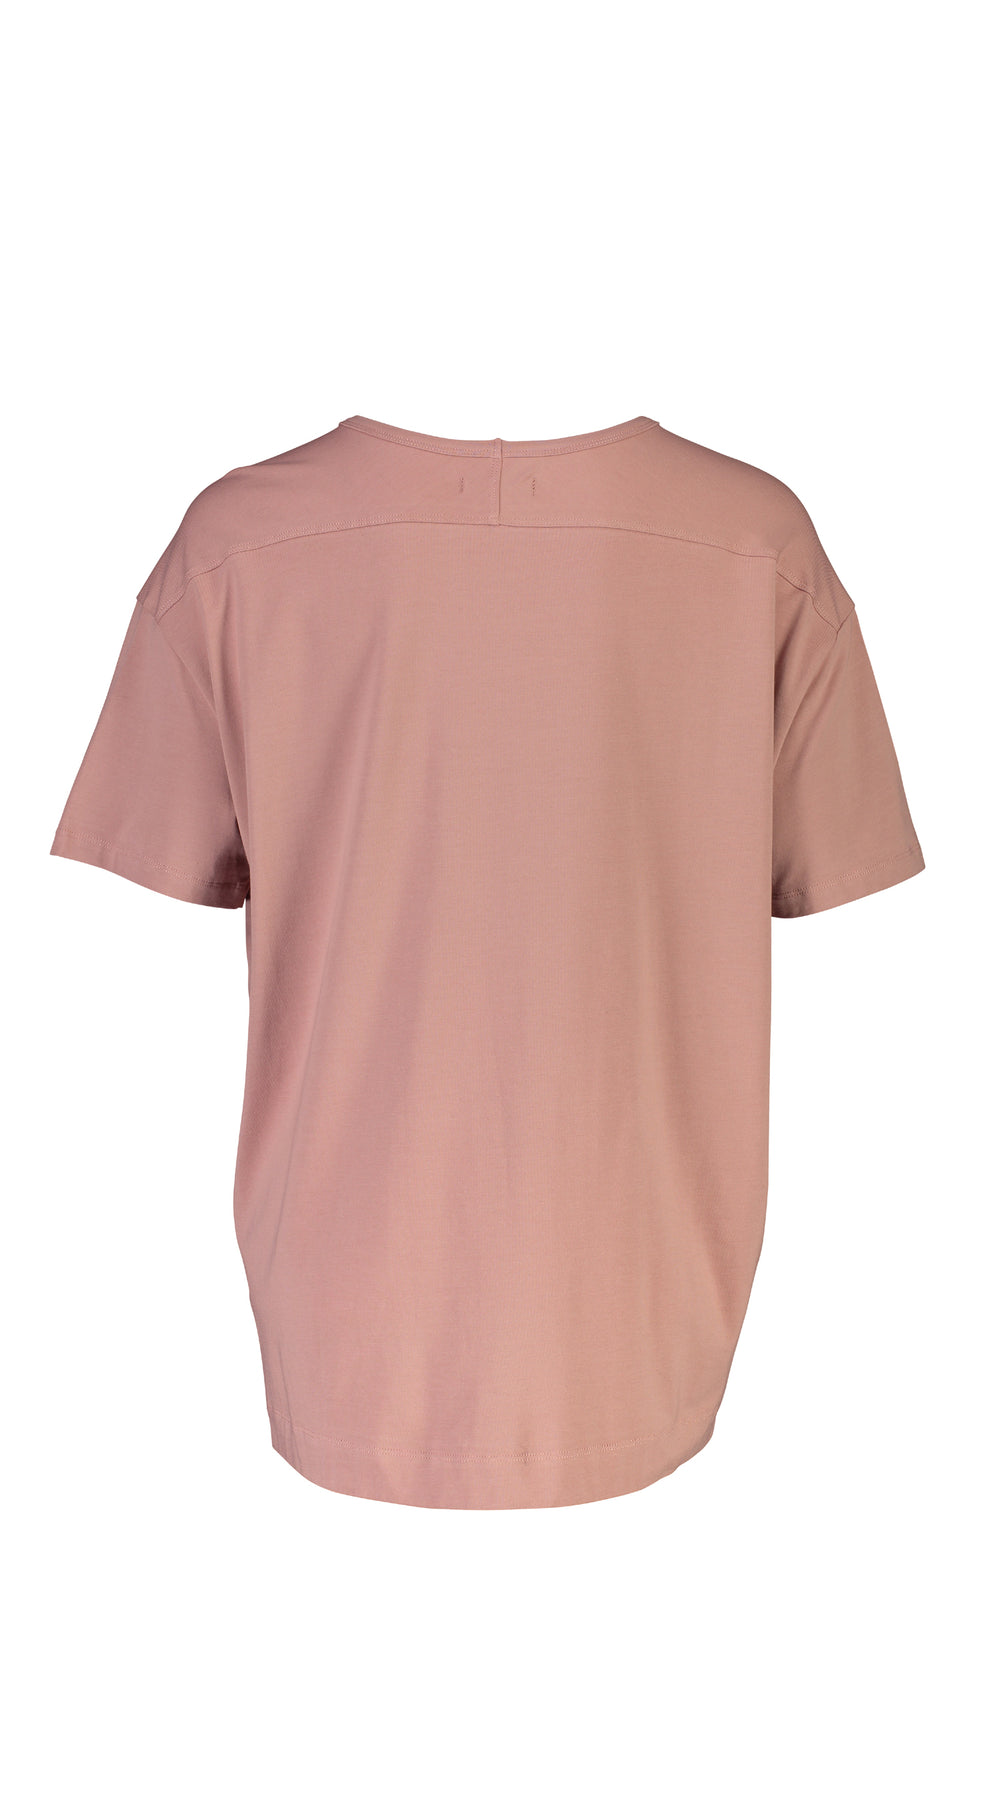 CRAWFORD TEE - ANTIQUE ROSE